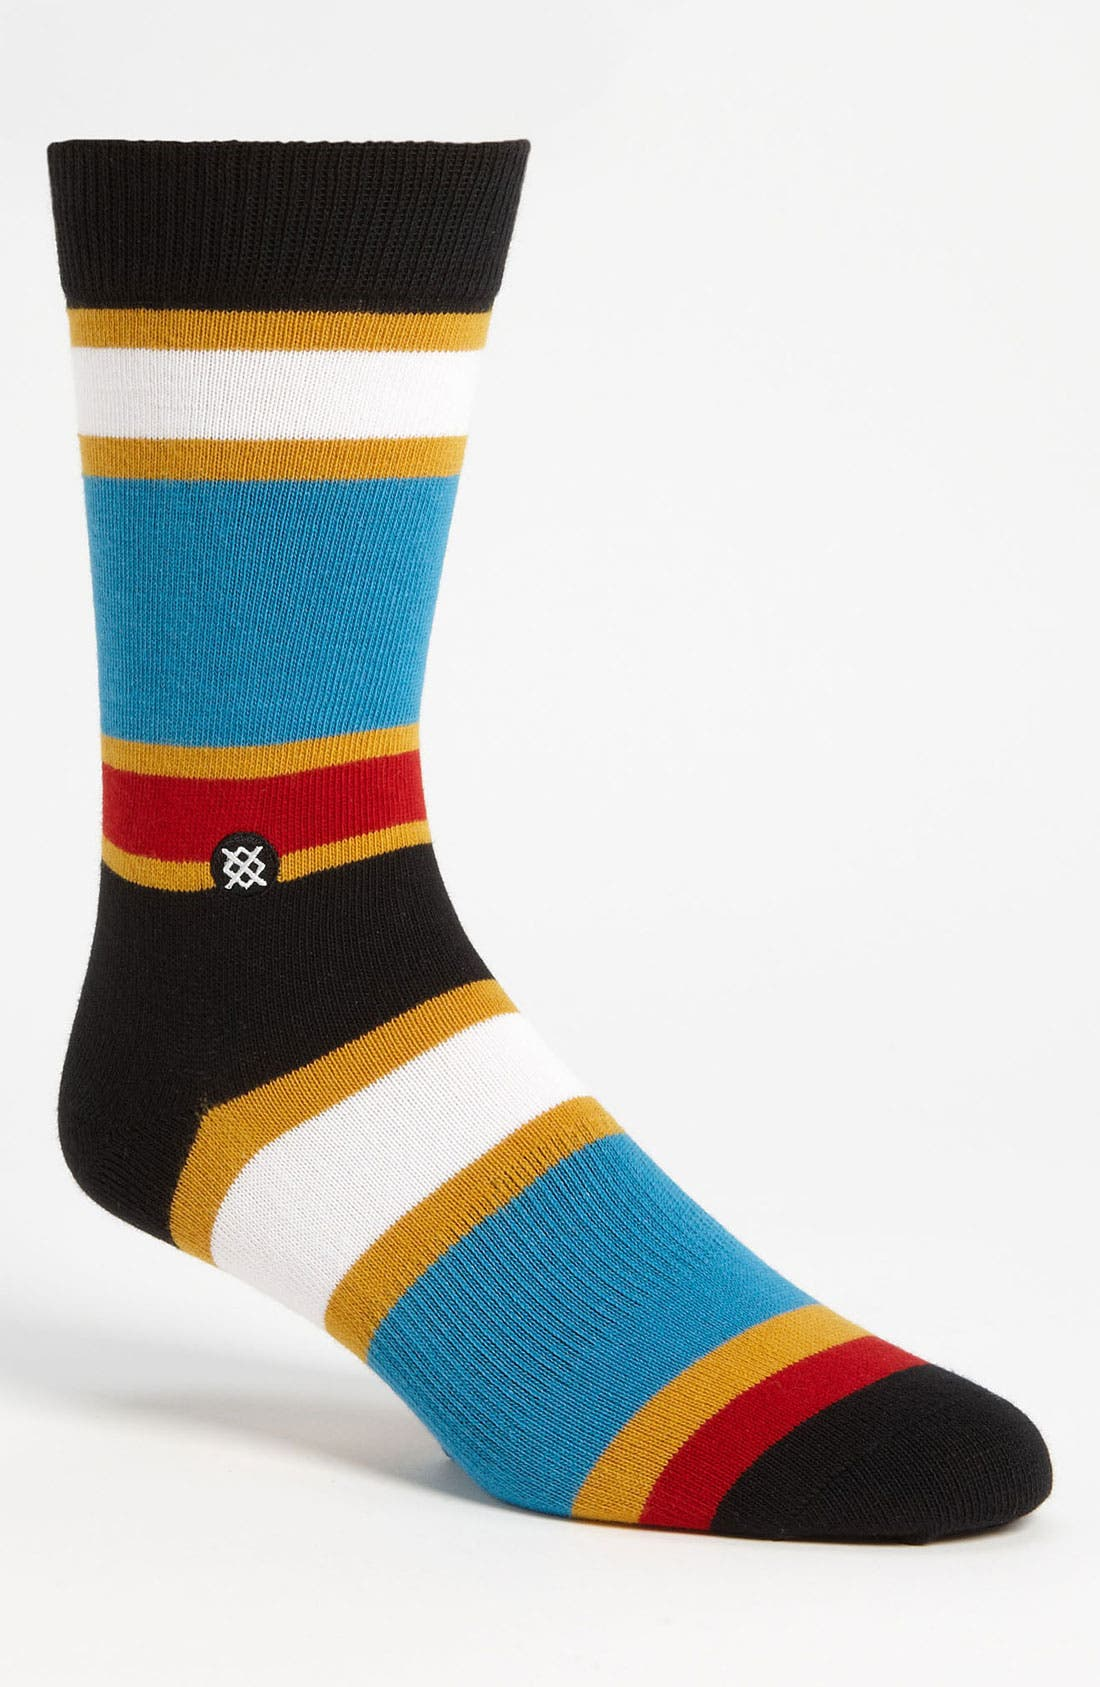 Alternate Image 1 Selected - Stance 'Aberdeen' Socks